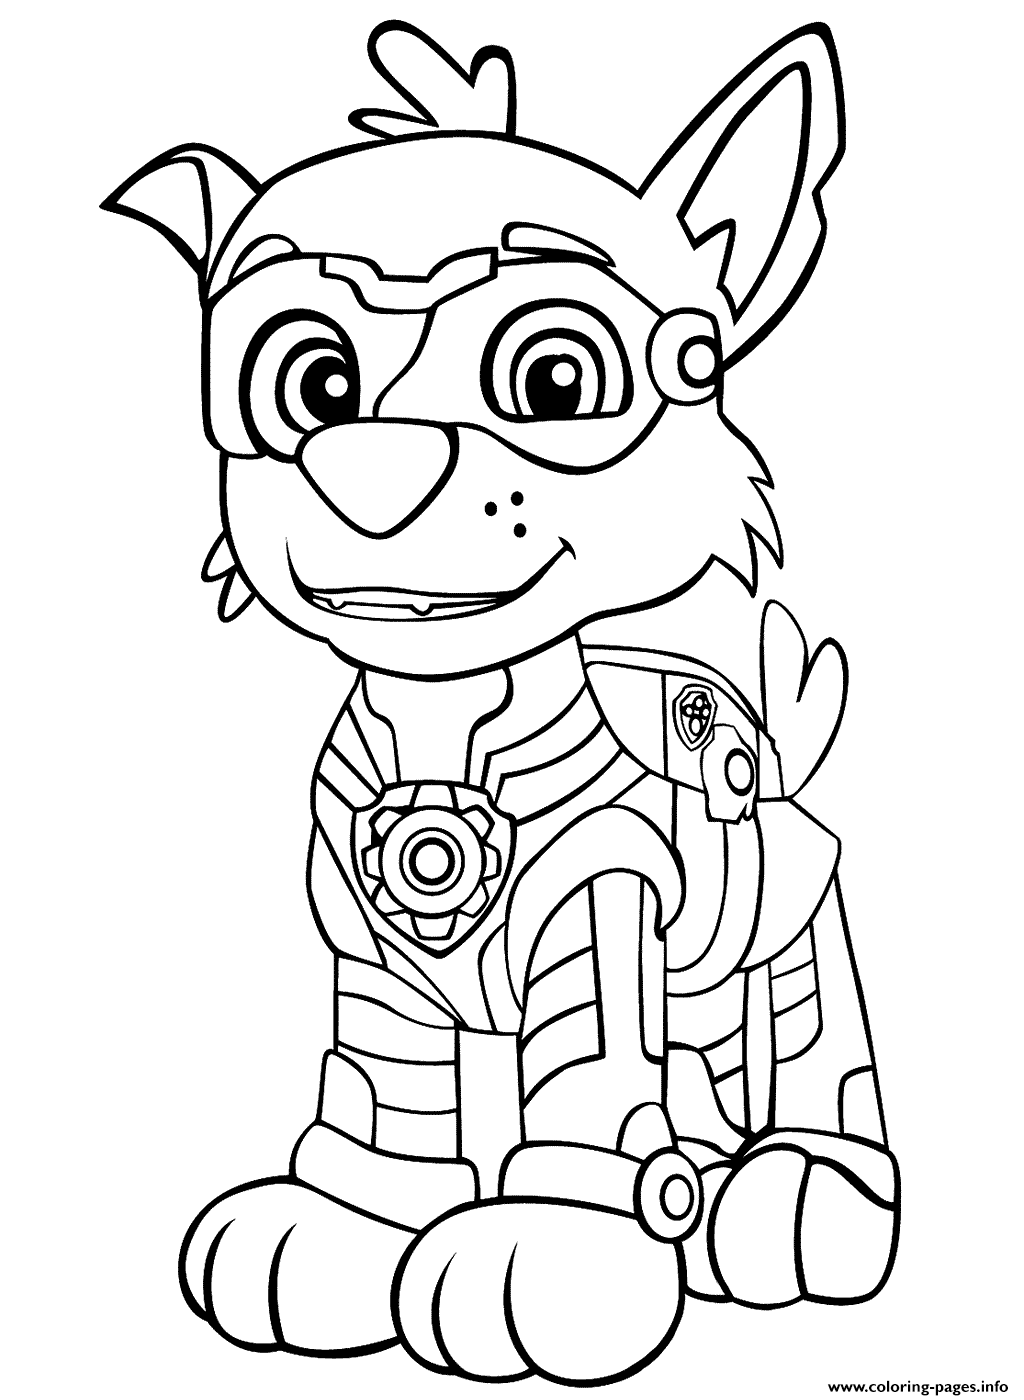 Print PAW Patrol Mighty Pups Rockys coloring pages in 2020 ...